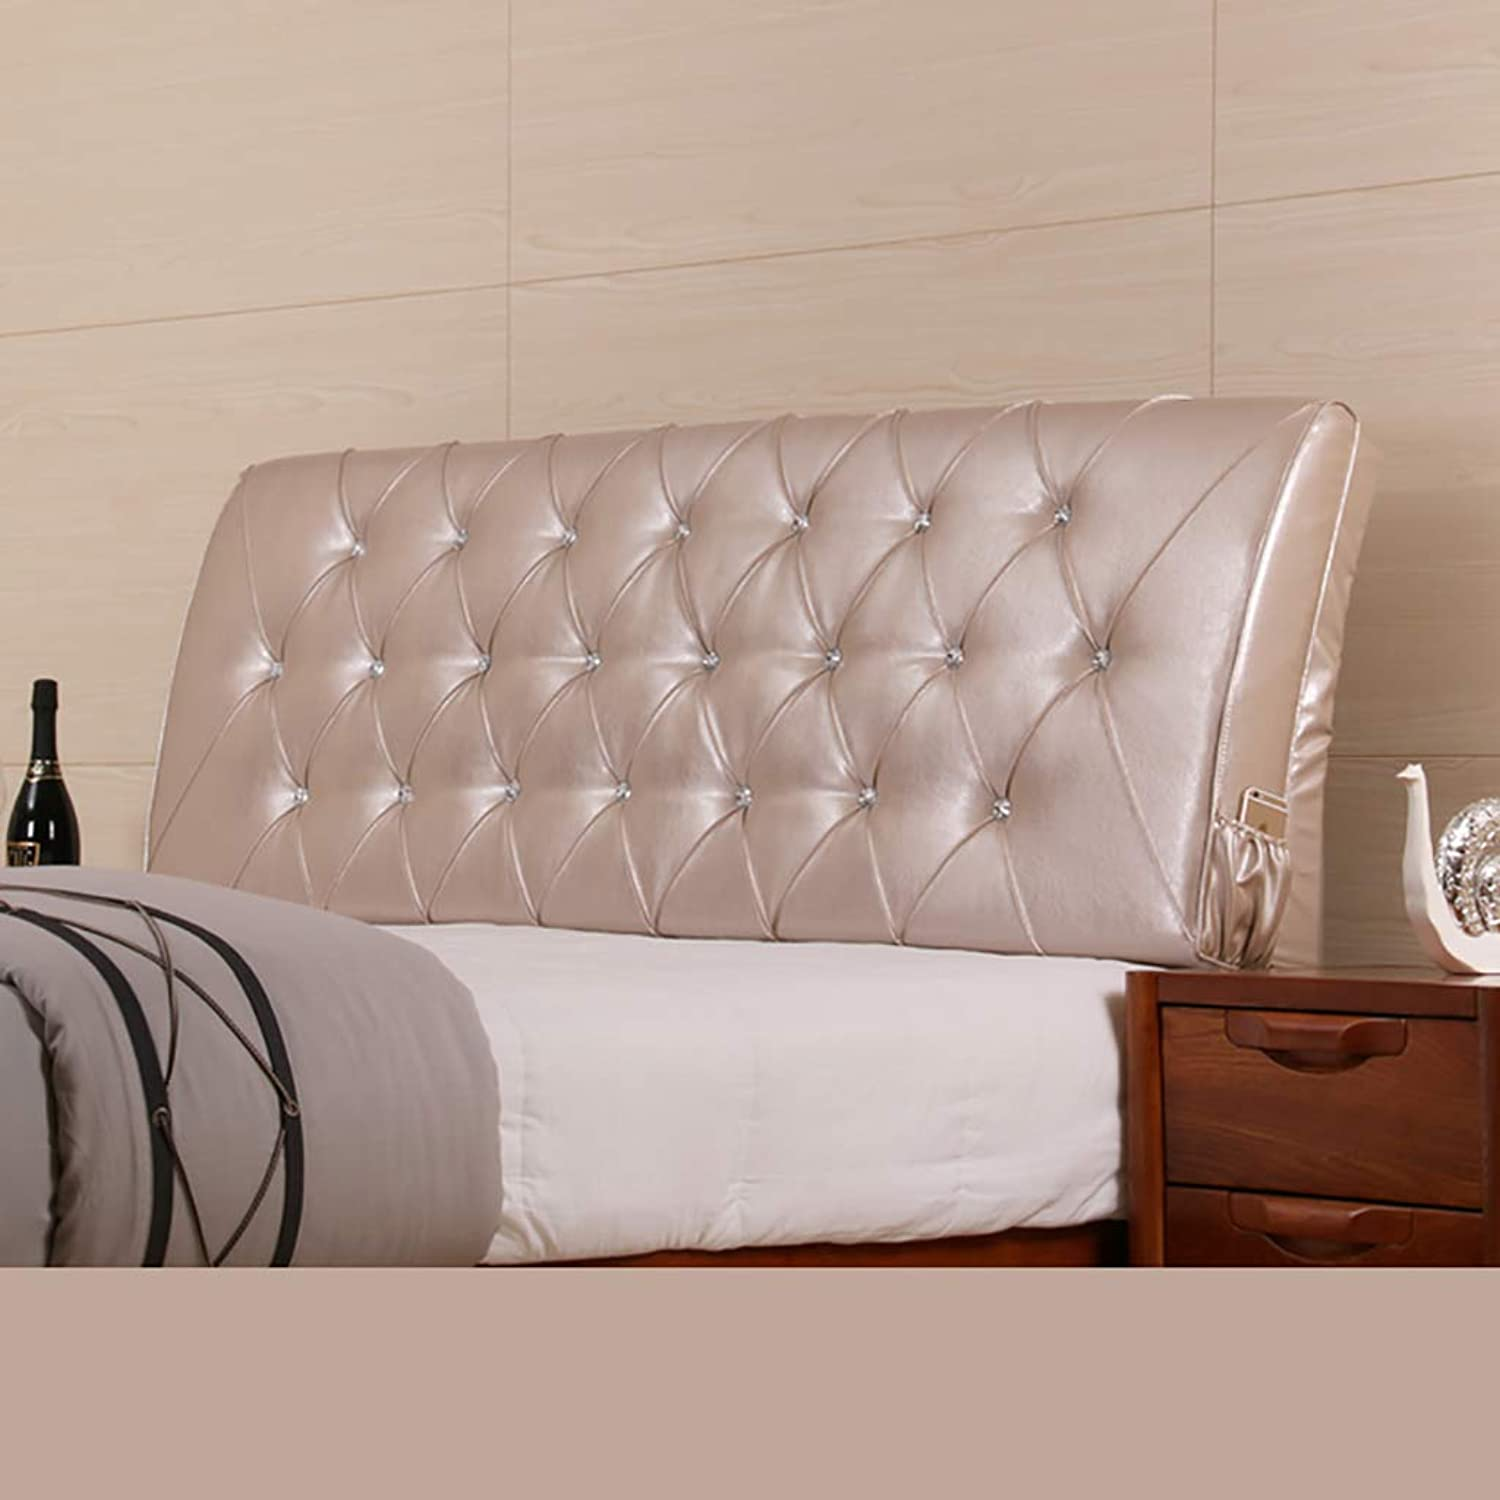 Headboard Bed Backrest Cushion Bed Cushion Bedside Pillow Leather Without Bed headboard Large Soft Pillow Lumbar Support,Detachable 5 Solid colors 8 Sizes (color   Champagne, Size   160  60cm)